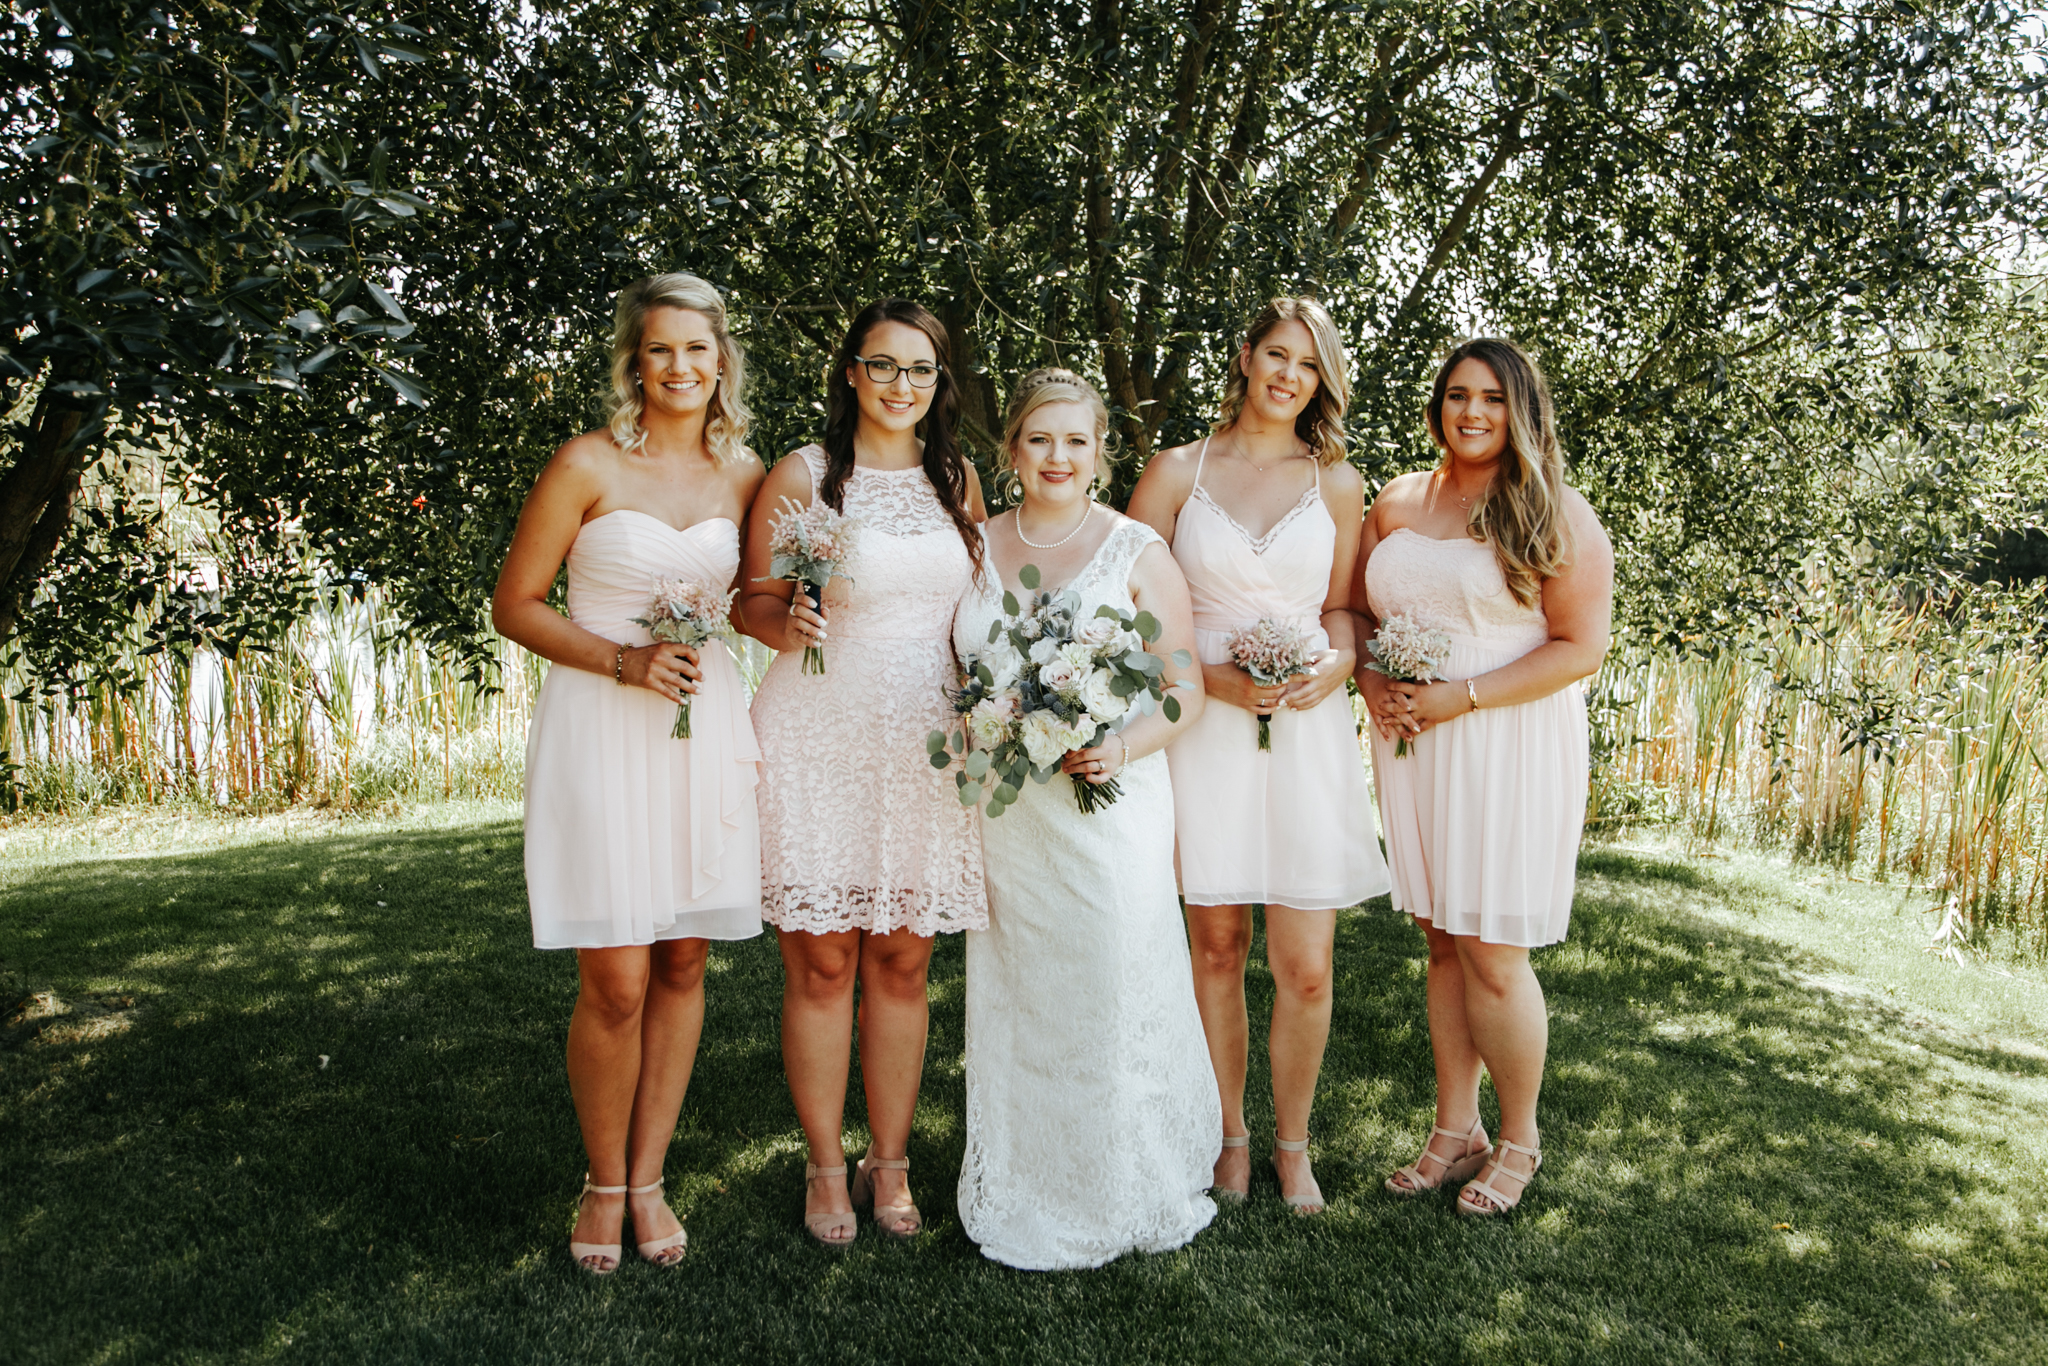 red-deer-wedding-photographer-love-and-be-loved-photography-emily-gab-photo-image-picture-112.jpg